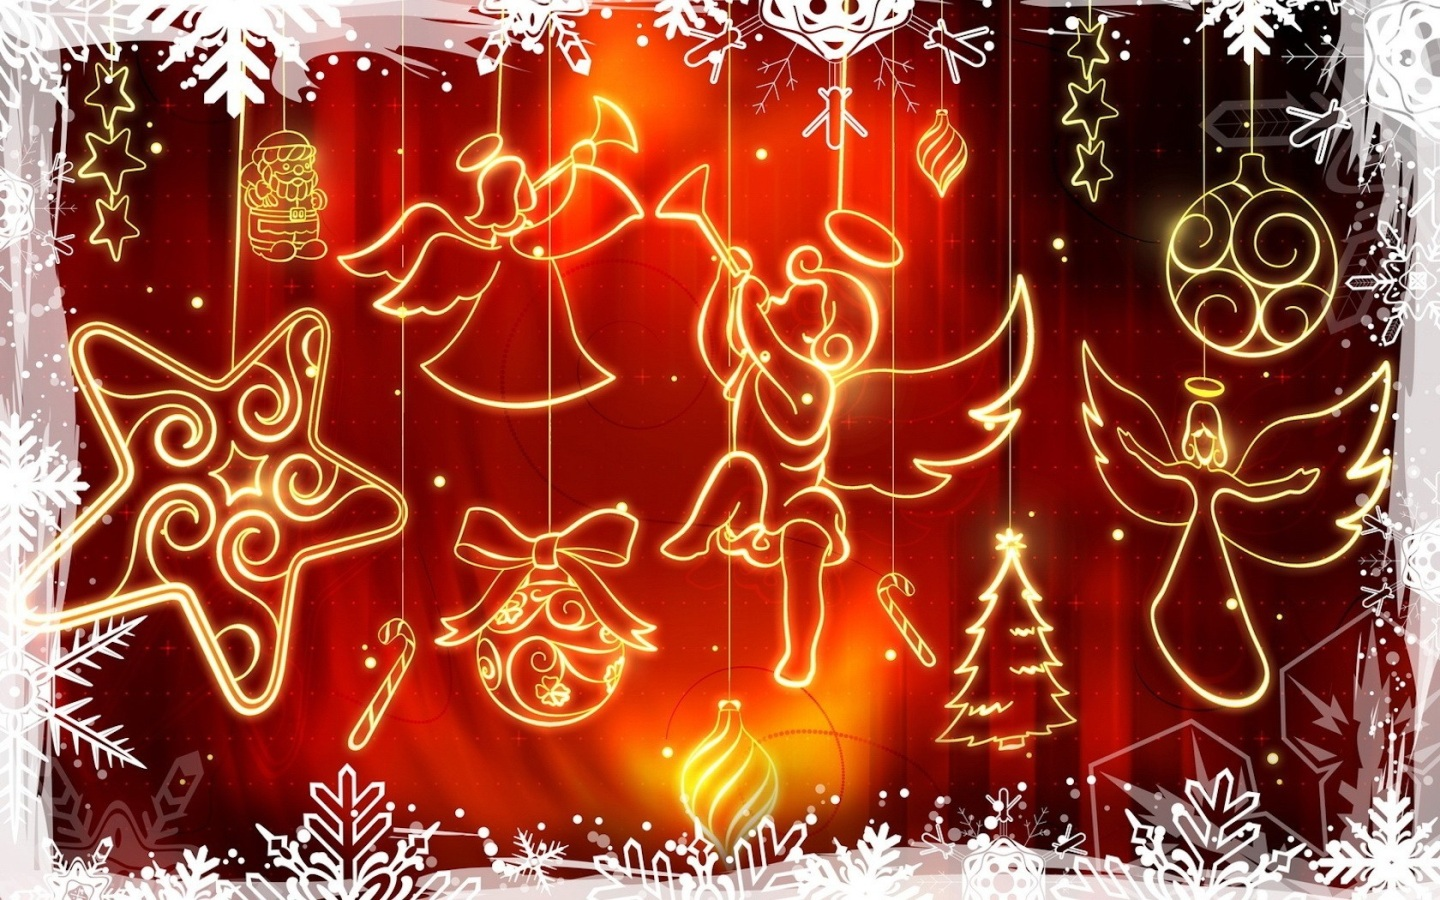 Papel De Parede Símbolos De Natal Wallpaper Para Download